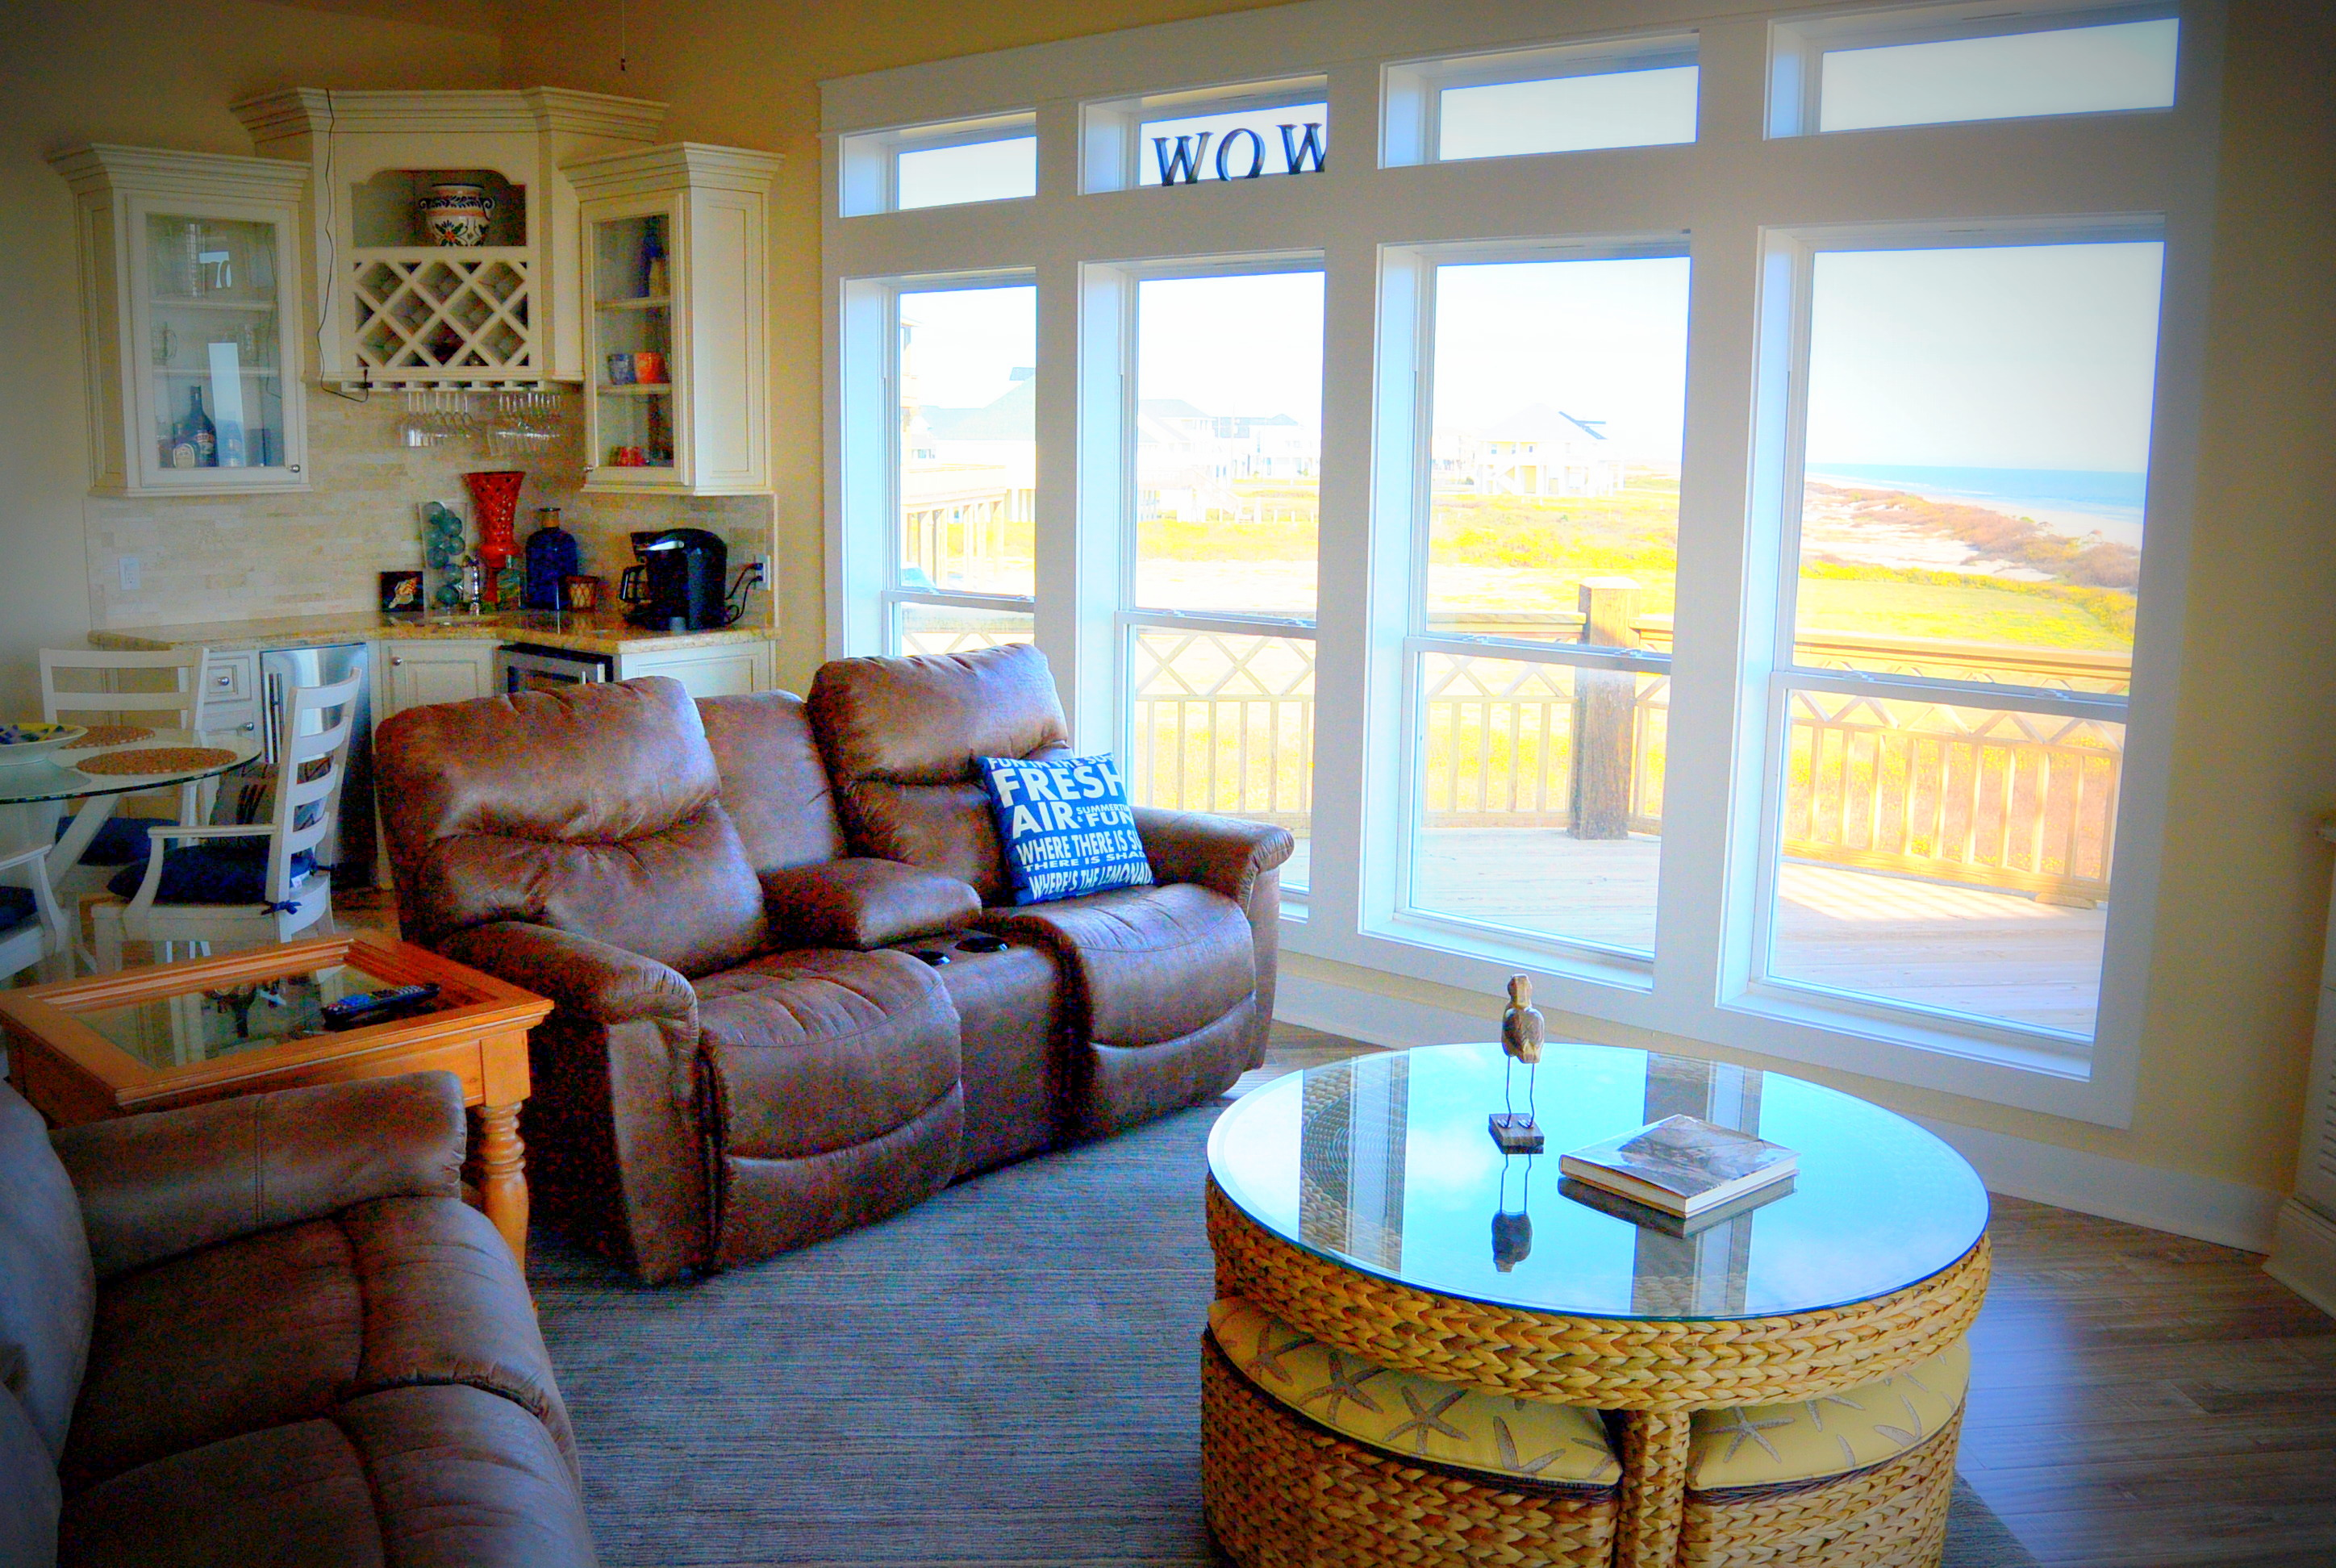 WOW living area